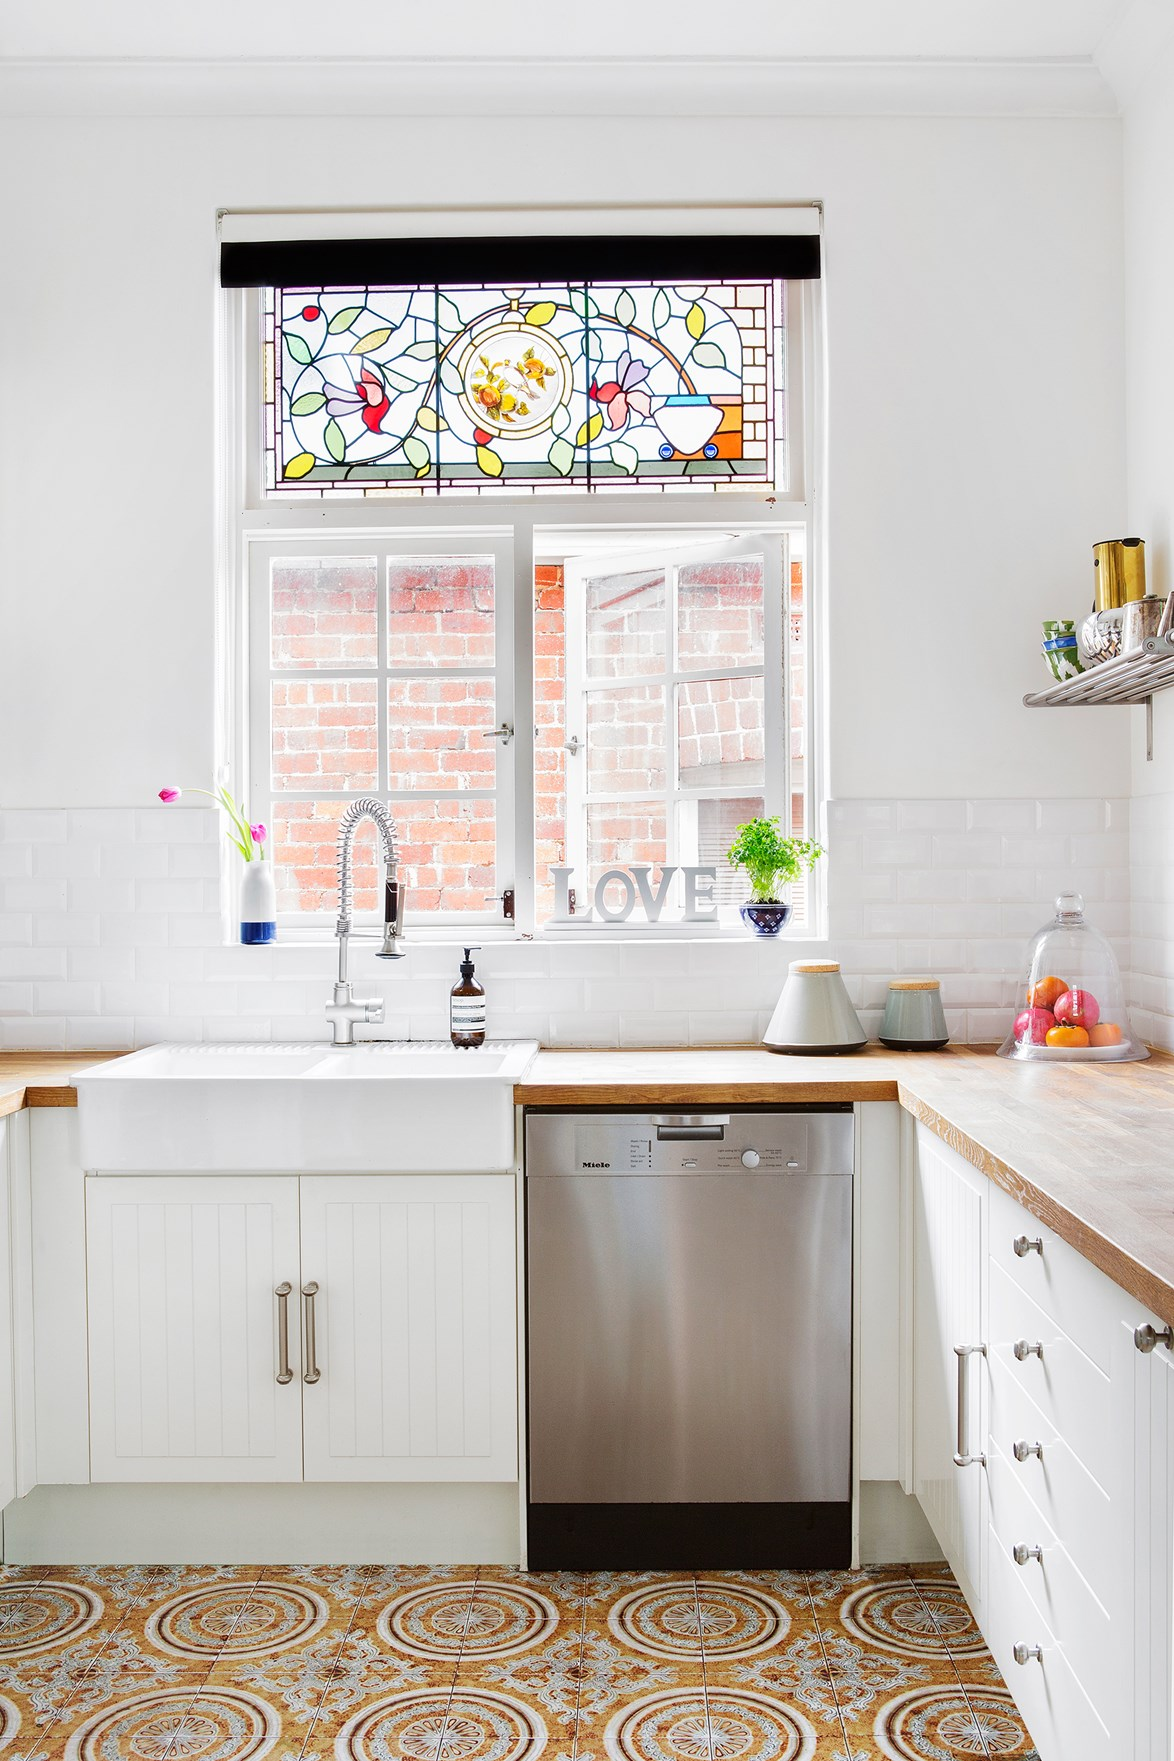 "This [Perth kitchen](https://www.homestolove.com.au/hollywood-style-californian-bungalow-in-perth-4750|target=""_blank"") was renovated using IKEA flat-pack cabinets in a beadboard style. The beadboard cabinets complement the home's period details, stained-glass windows and timber benchtops."